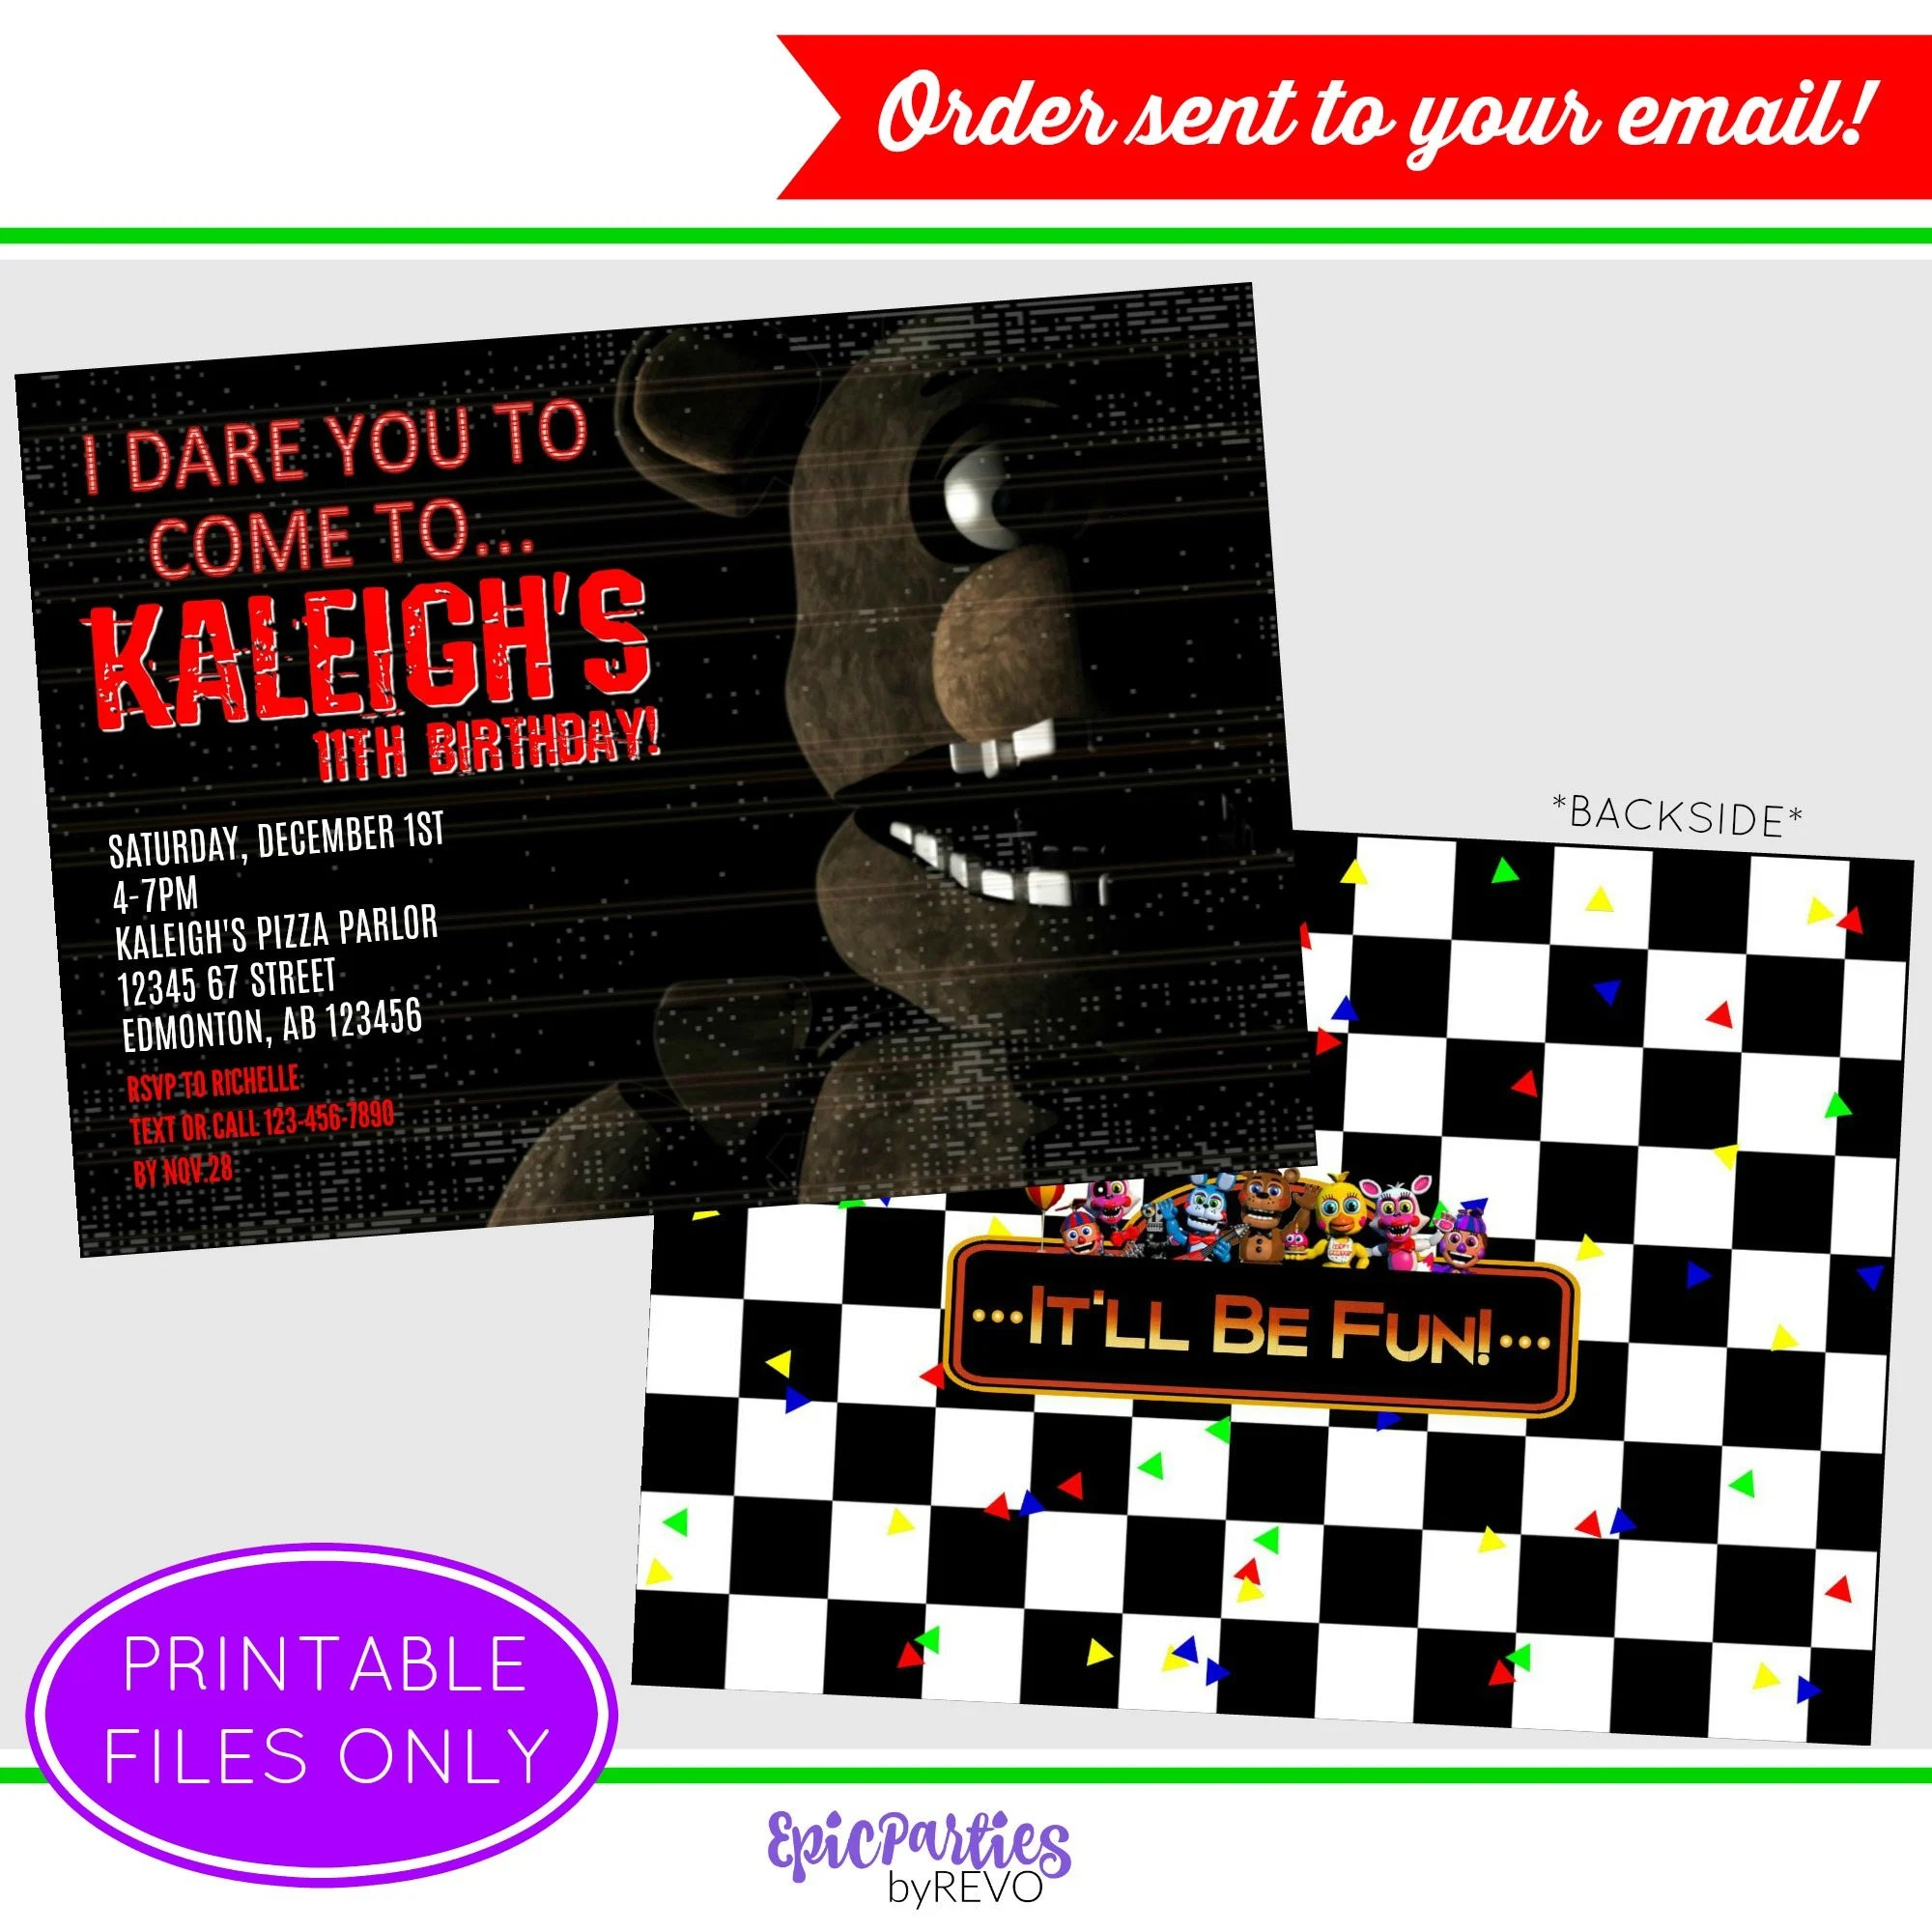 fnaf invitation five nights at freddy s birthday fnaf printable invitation fnaf birthday party decorations epic parties by revo